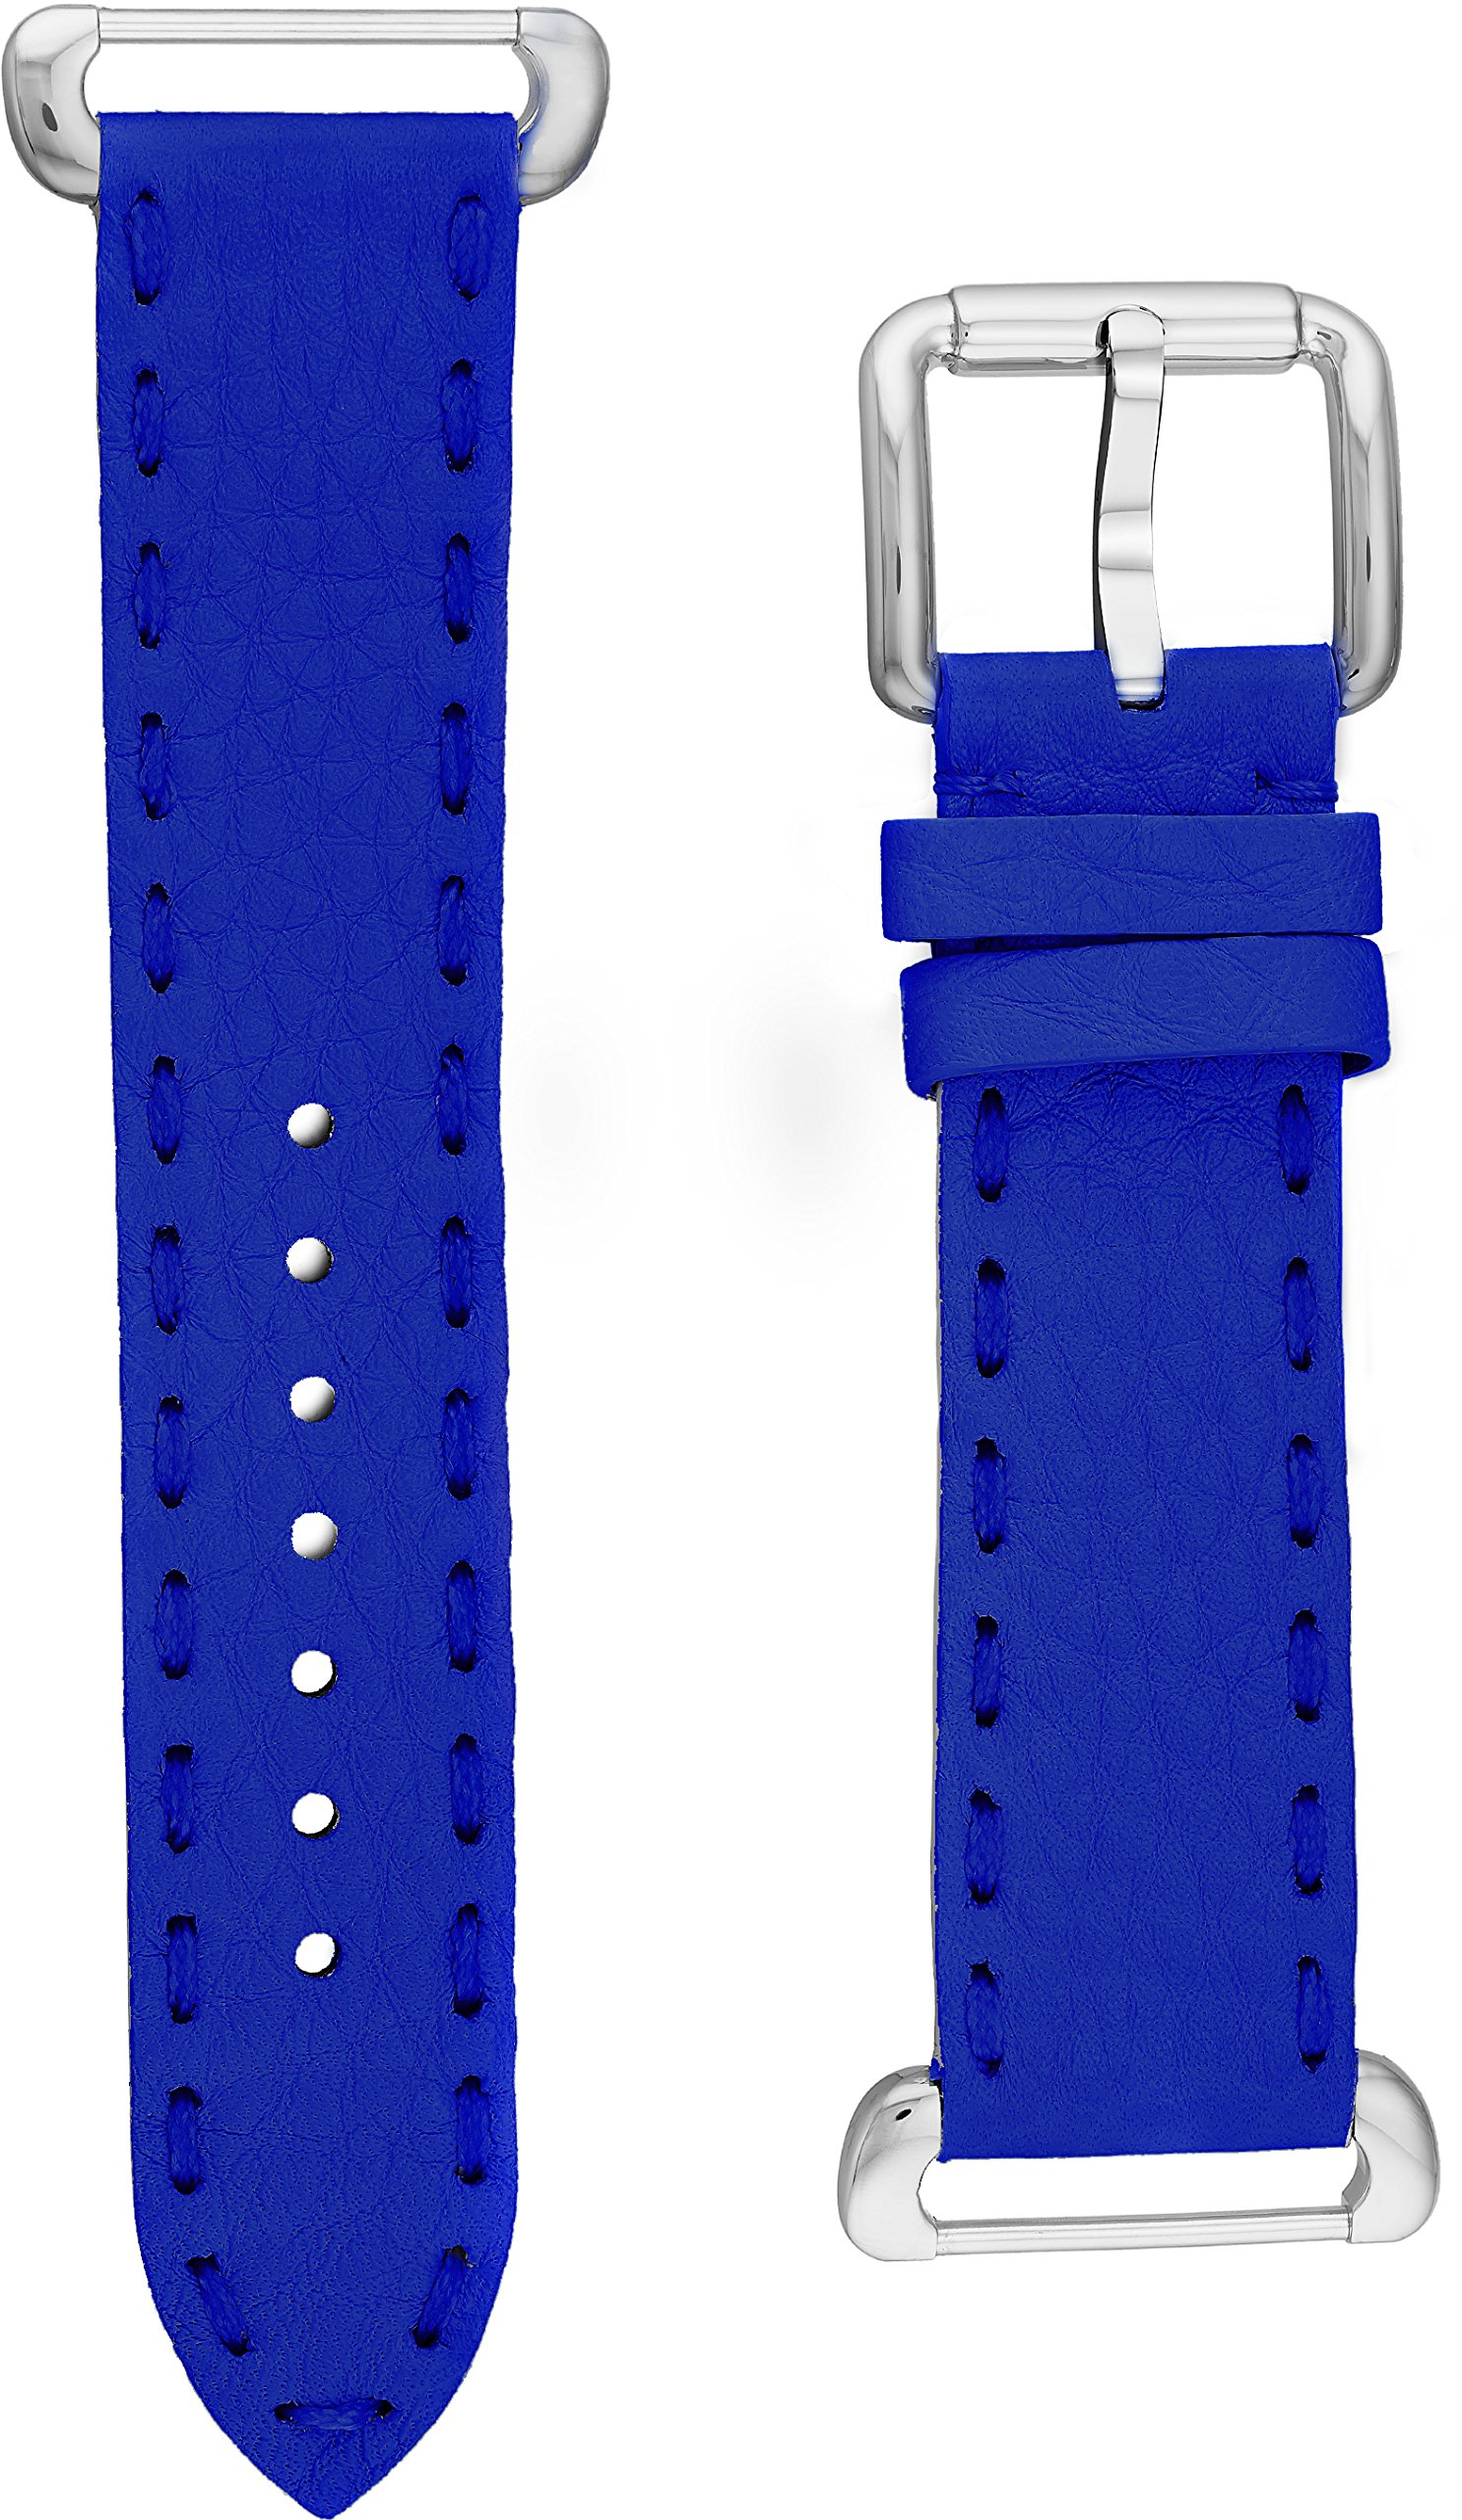 Fendi Selleria Interchangeable Replacement Watch Band - 18mm Neon Blue Calfskin Leather Strap with Pin Buckle SSN18RC3S